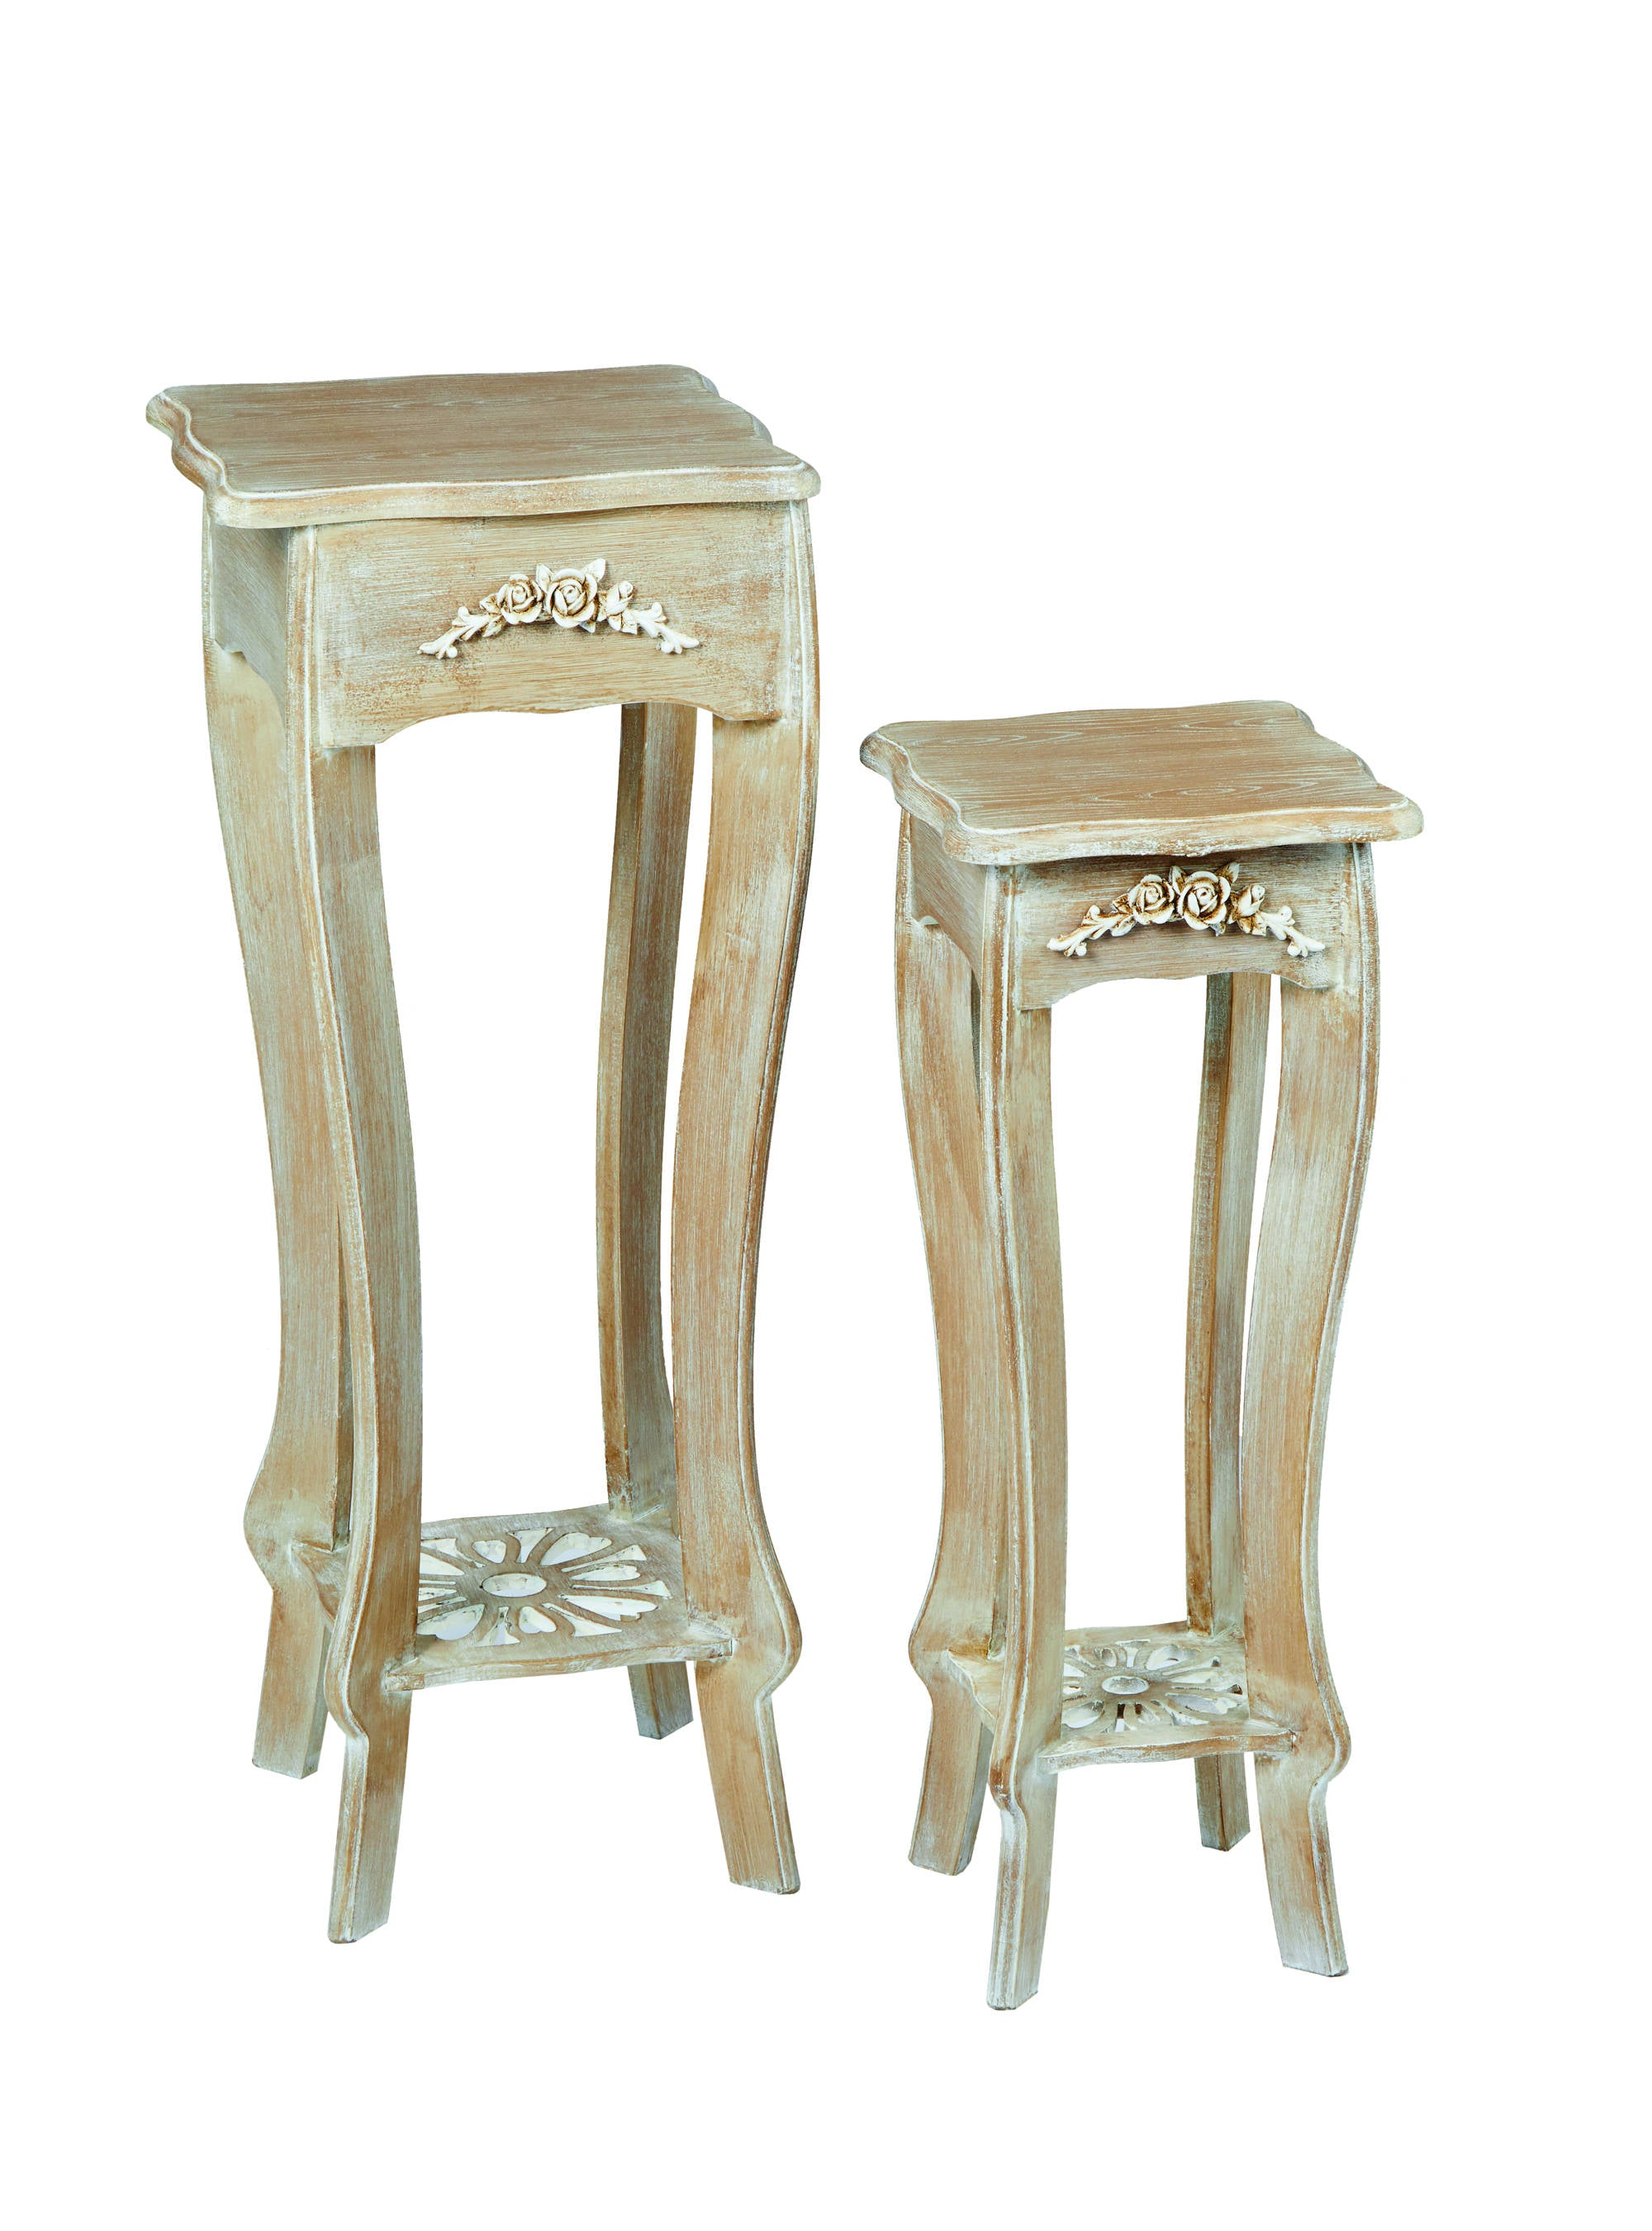 Nimes Set Of 2 Plant Stands - Ezzo